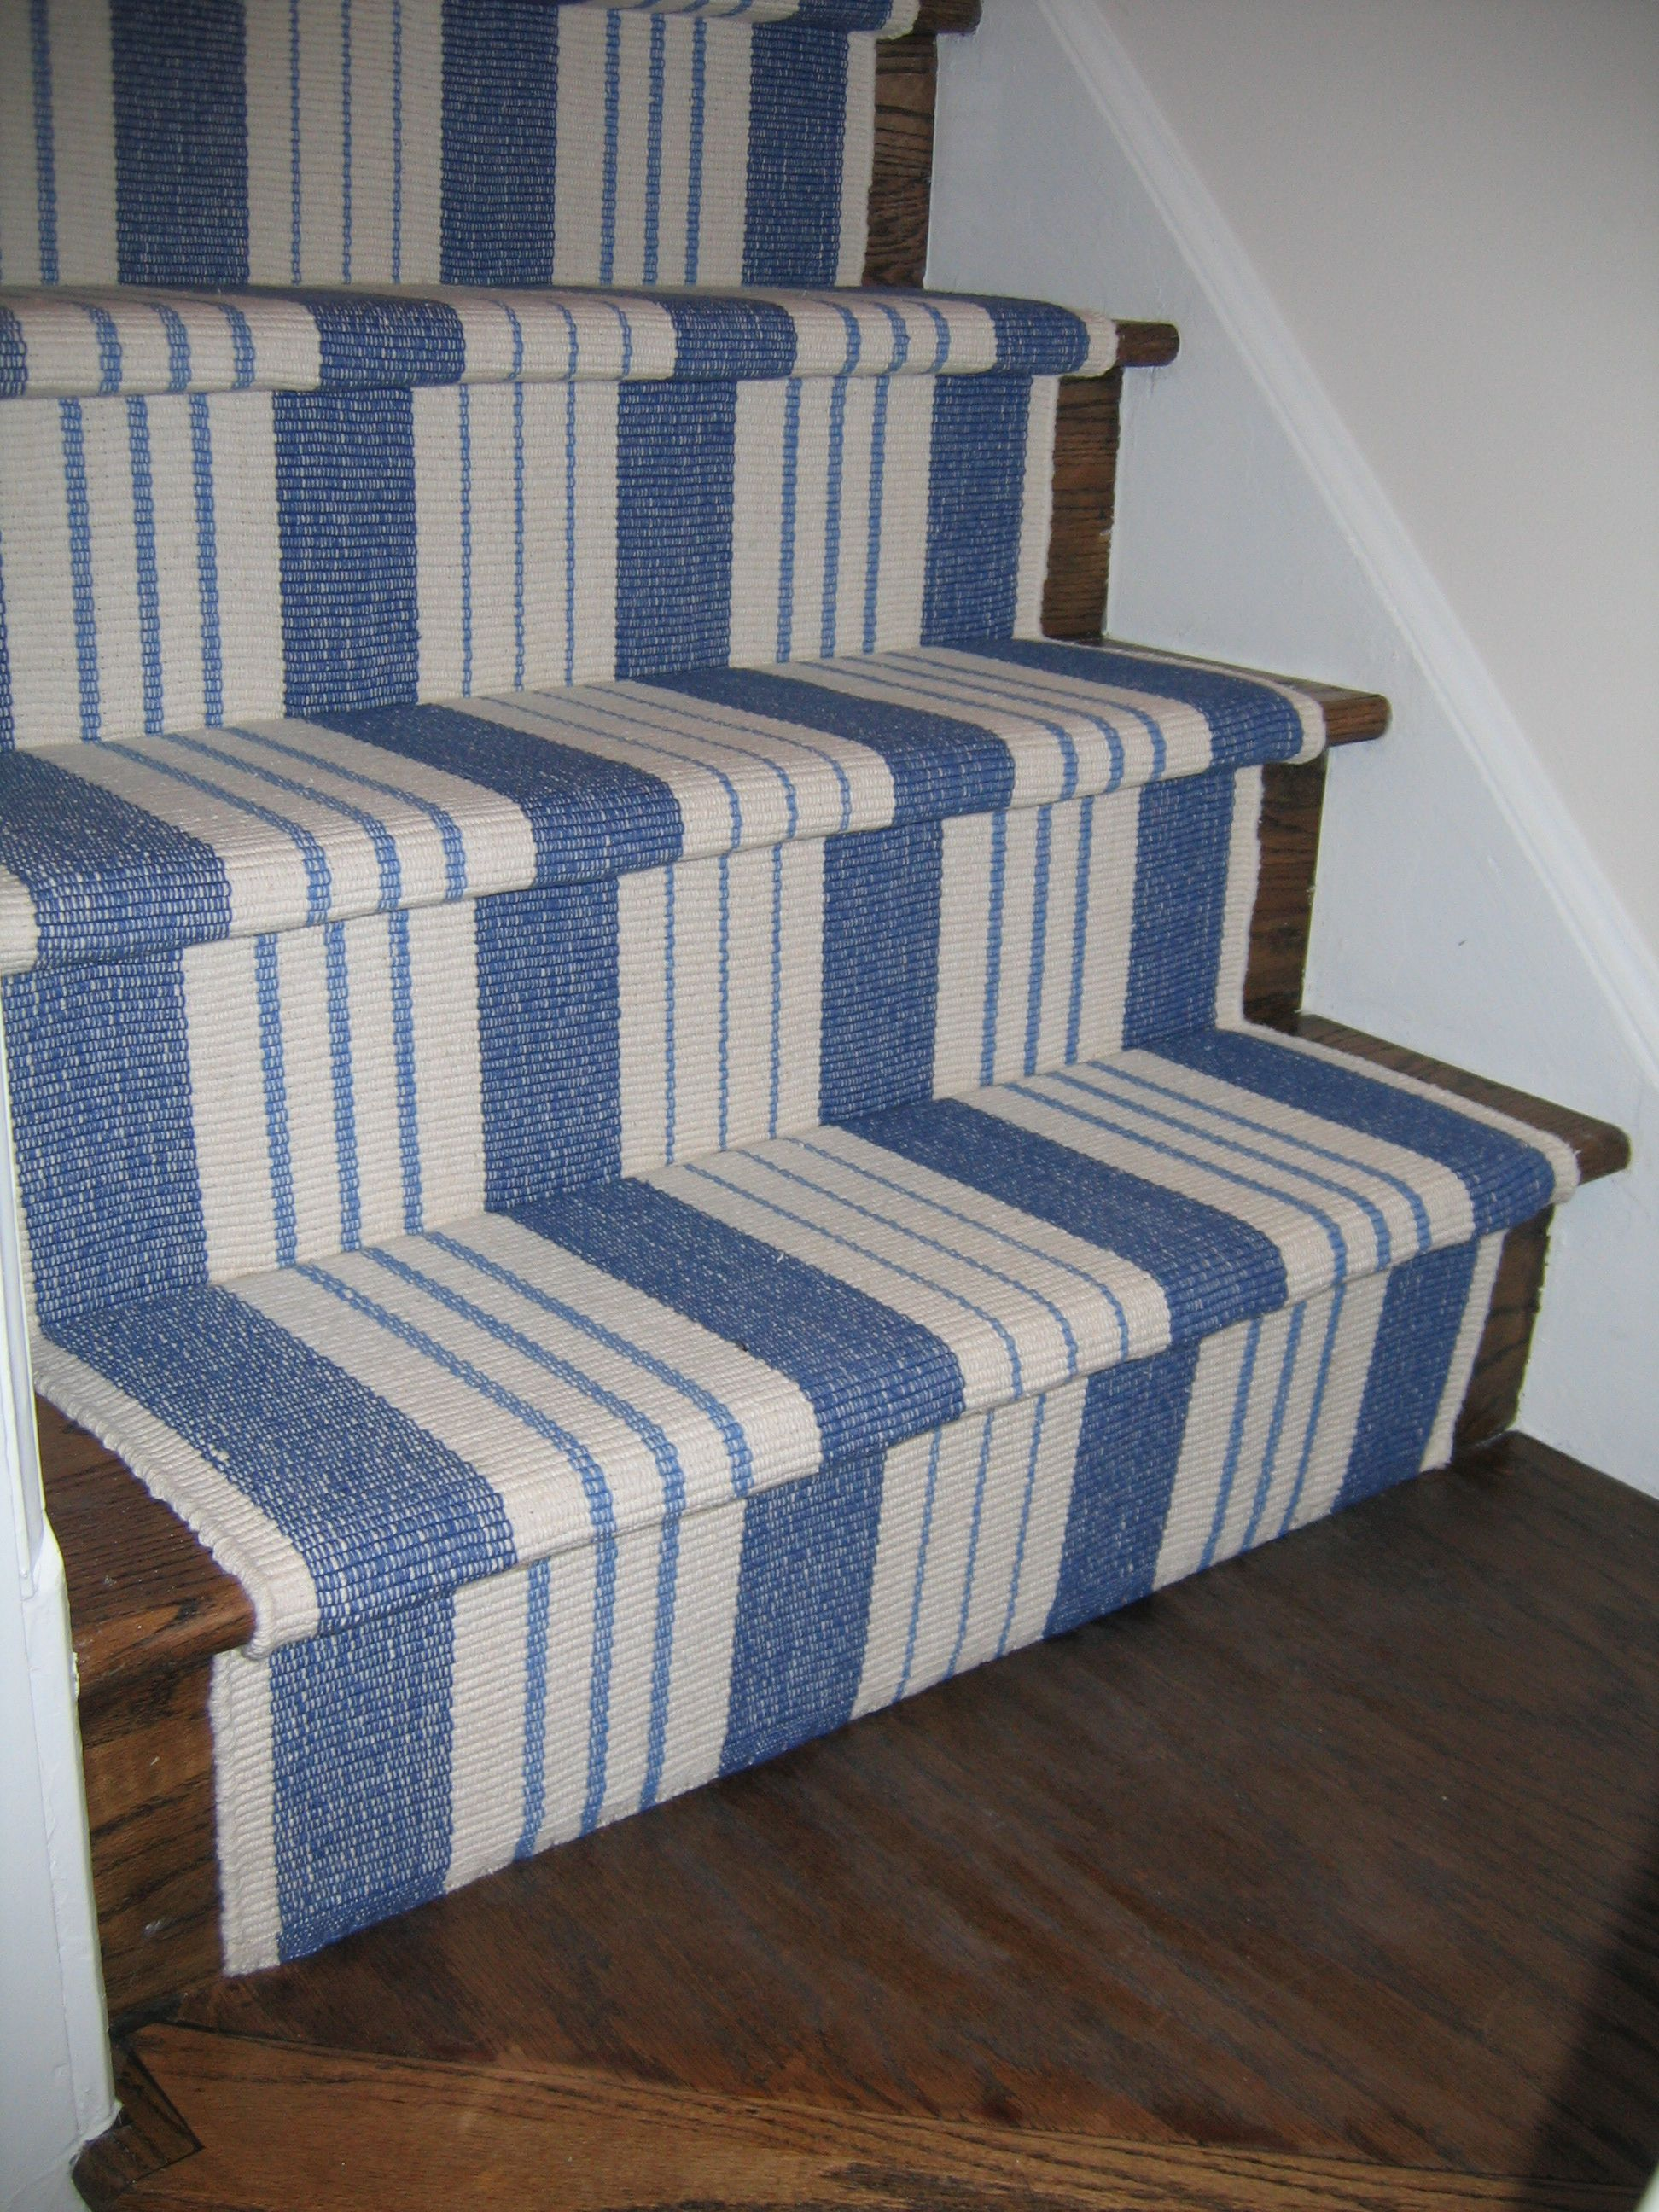 Best Blue Striped Stair Runner I D Use The Outdoor Rug 400 x 300